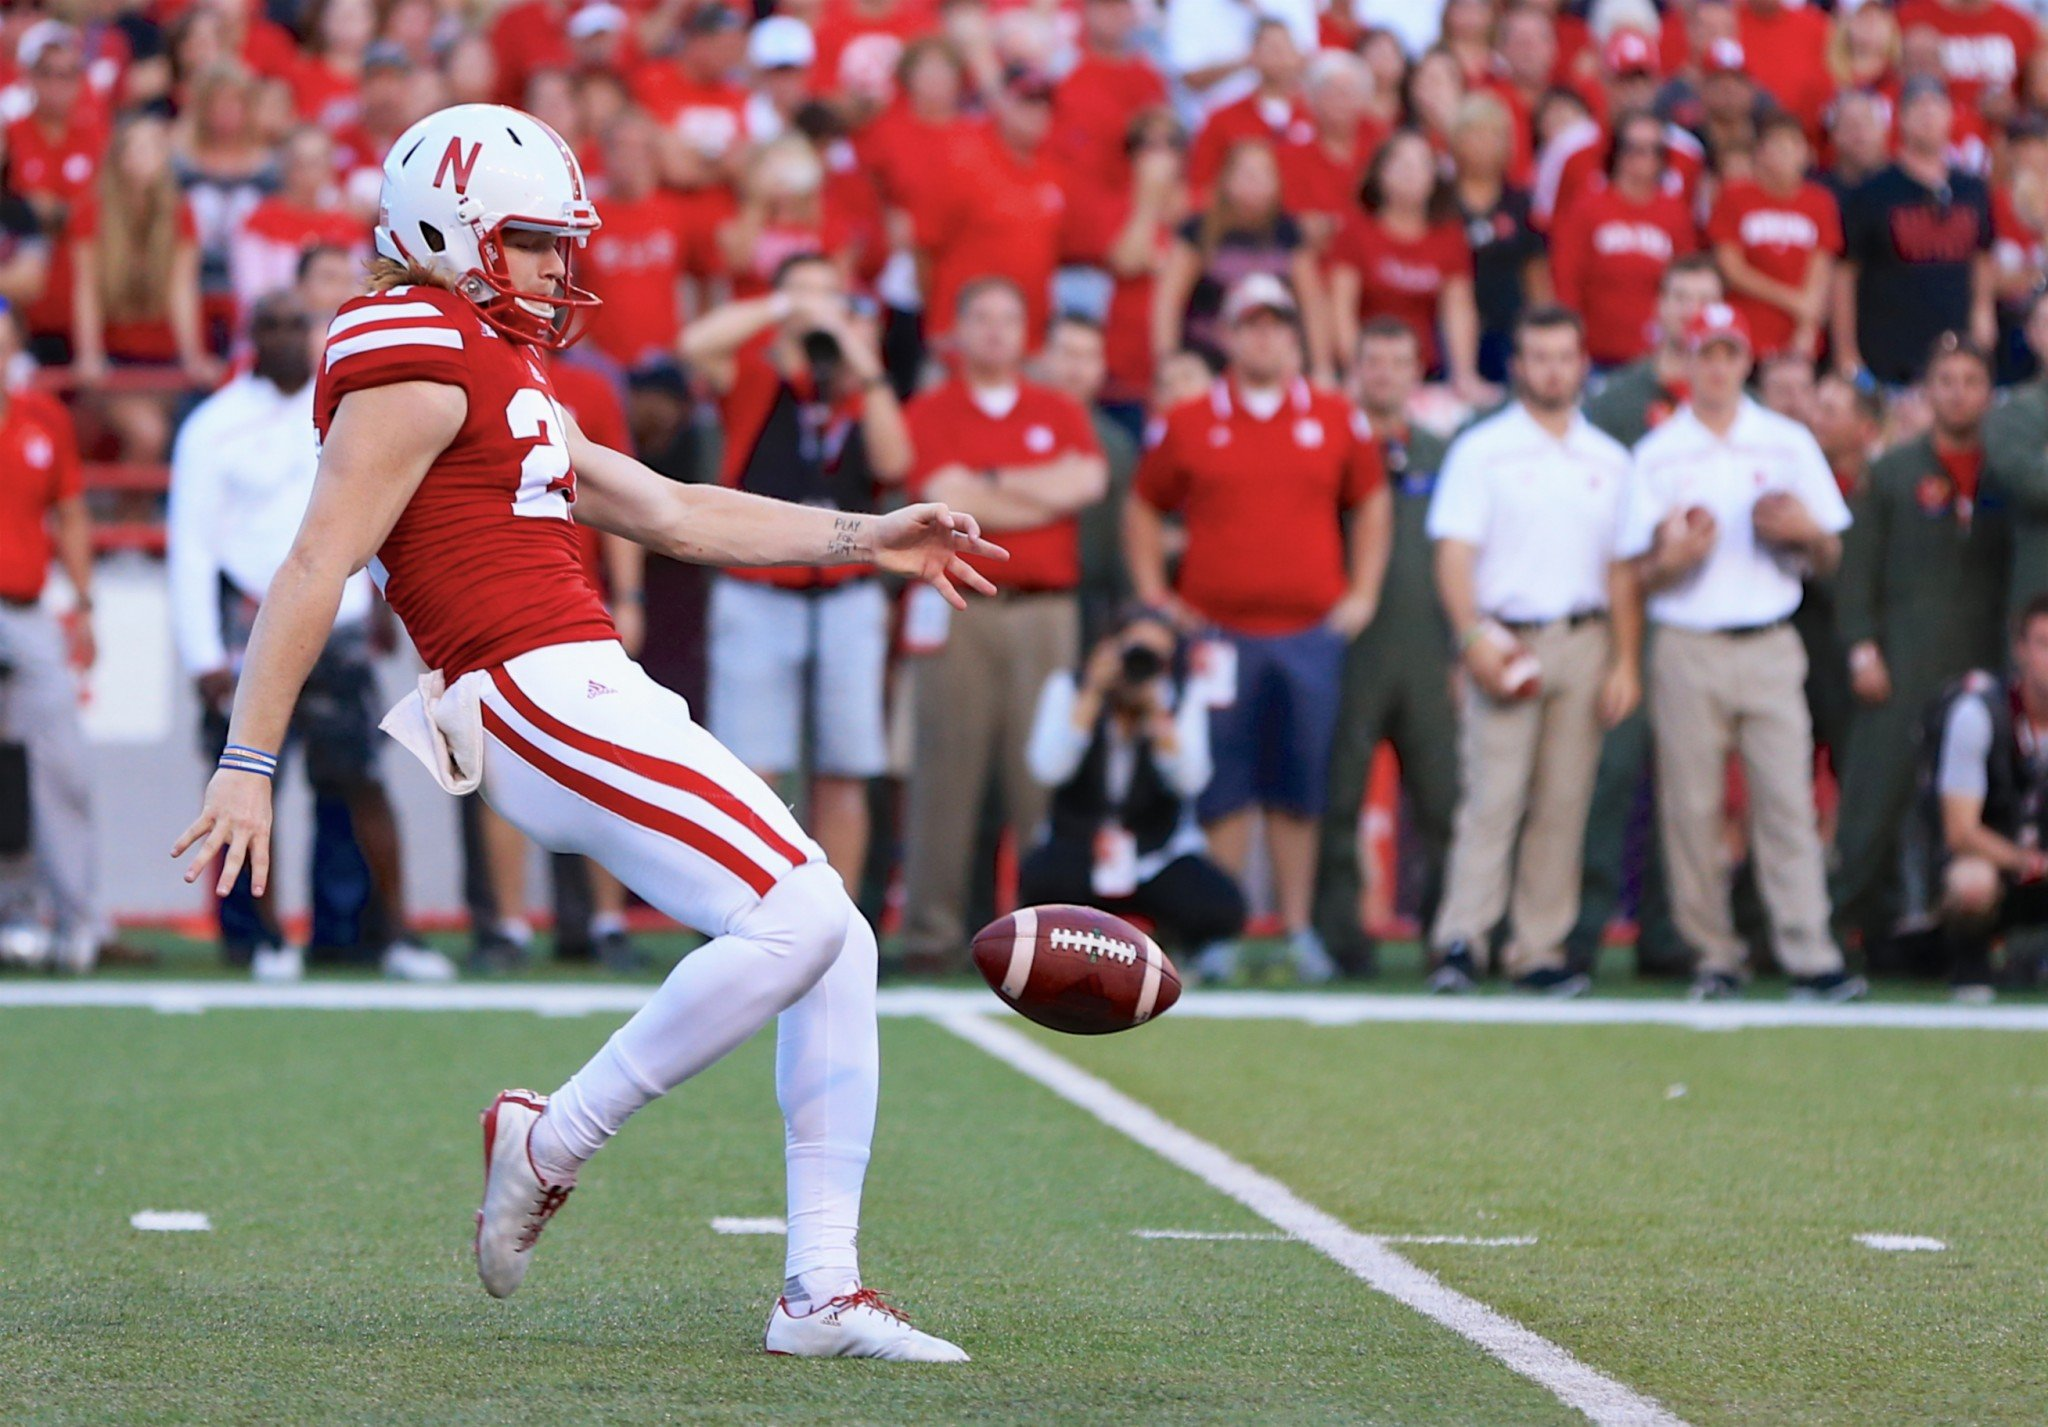 Sam Foltz (27) led the Big Ten with an average of 44.2 yards per punt in 2015. He died in July. (AP Photo/Nati Harnik)